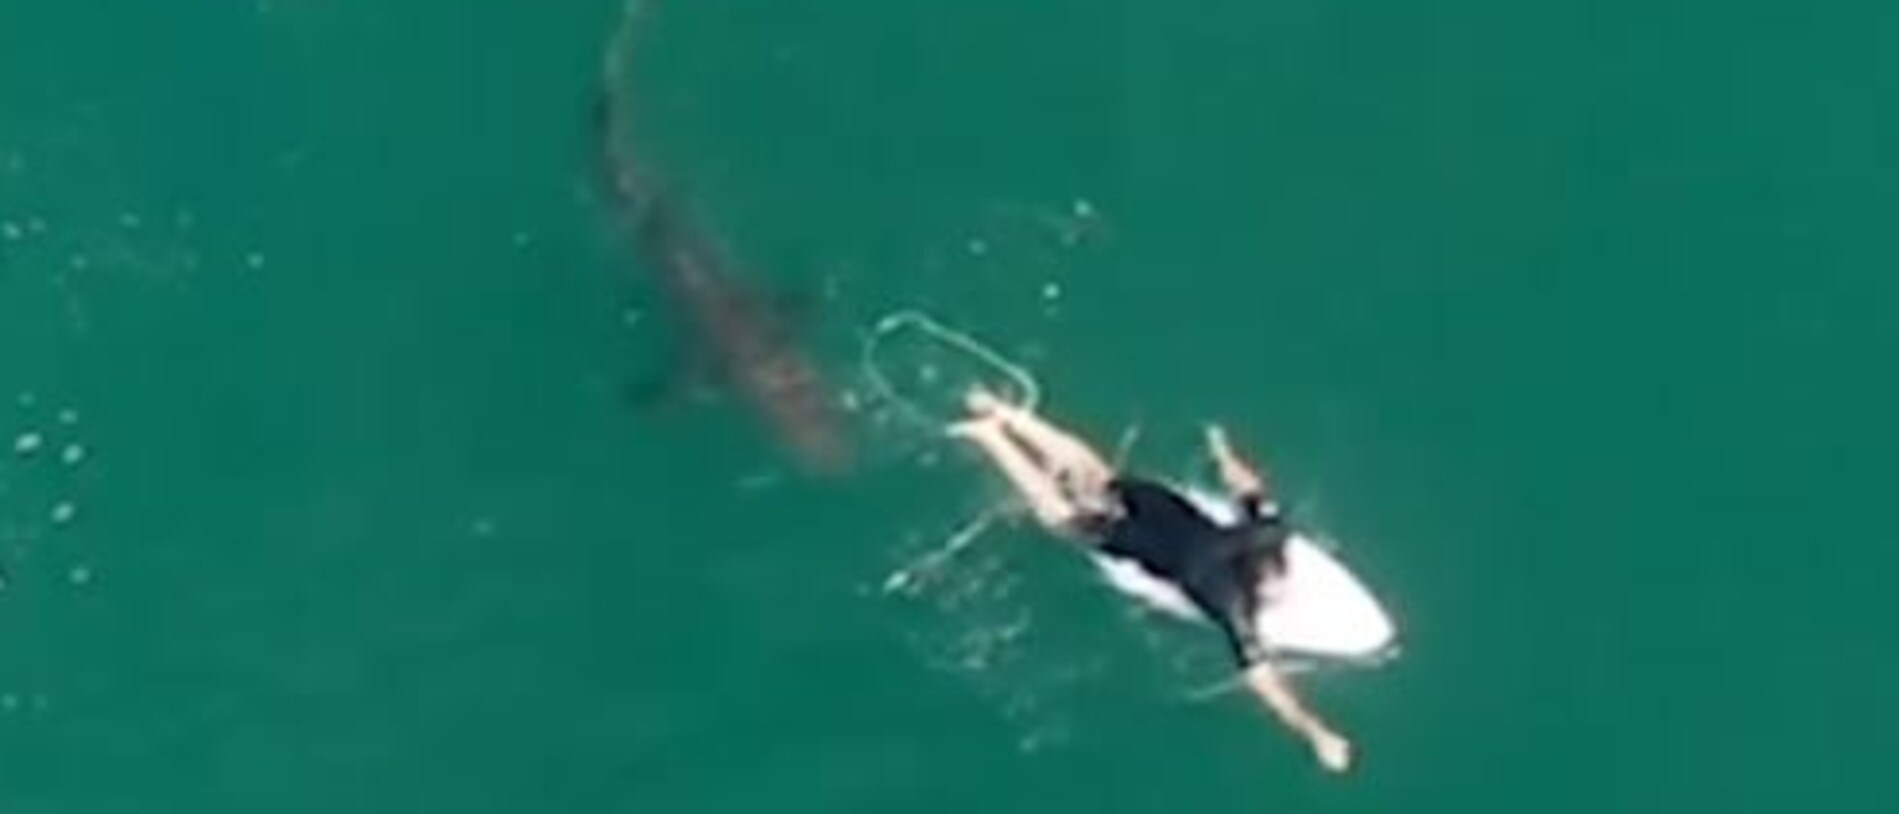 The shark is seen approached Wilkinson as he paddled in the water. Picture: Surf Life Saving NSW